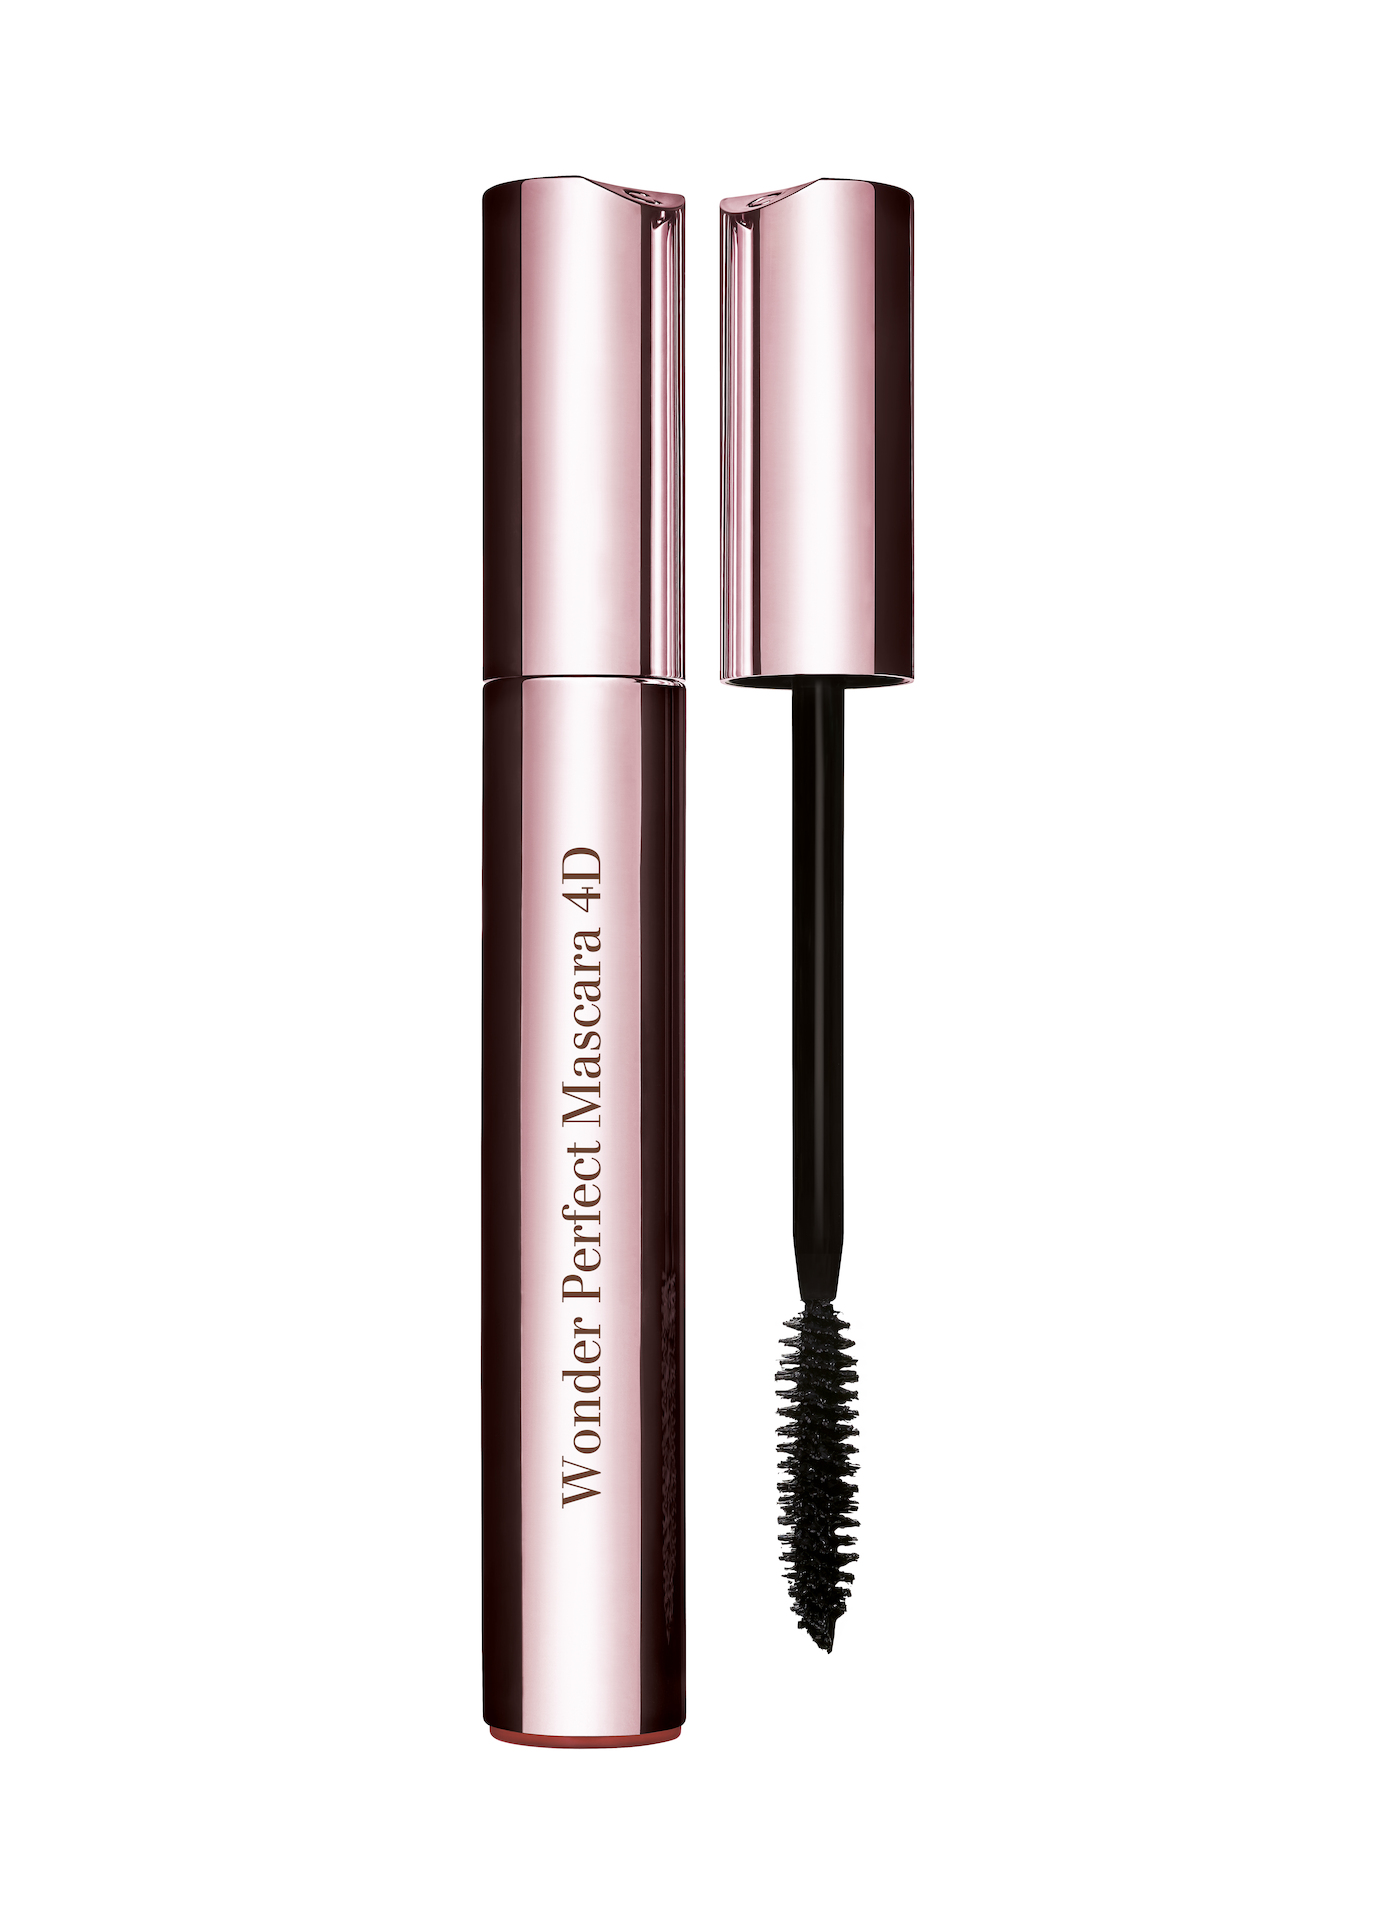 Wonder Perfect Mascara 4D 2 Perfect Brown